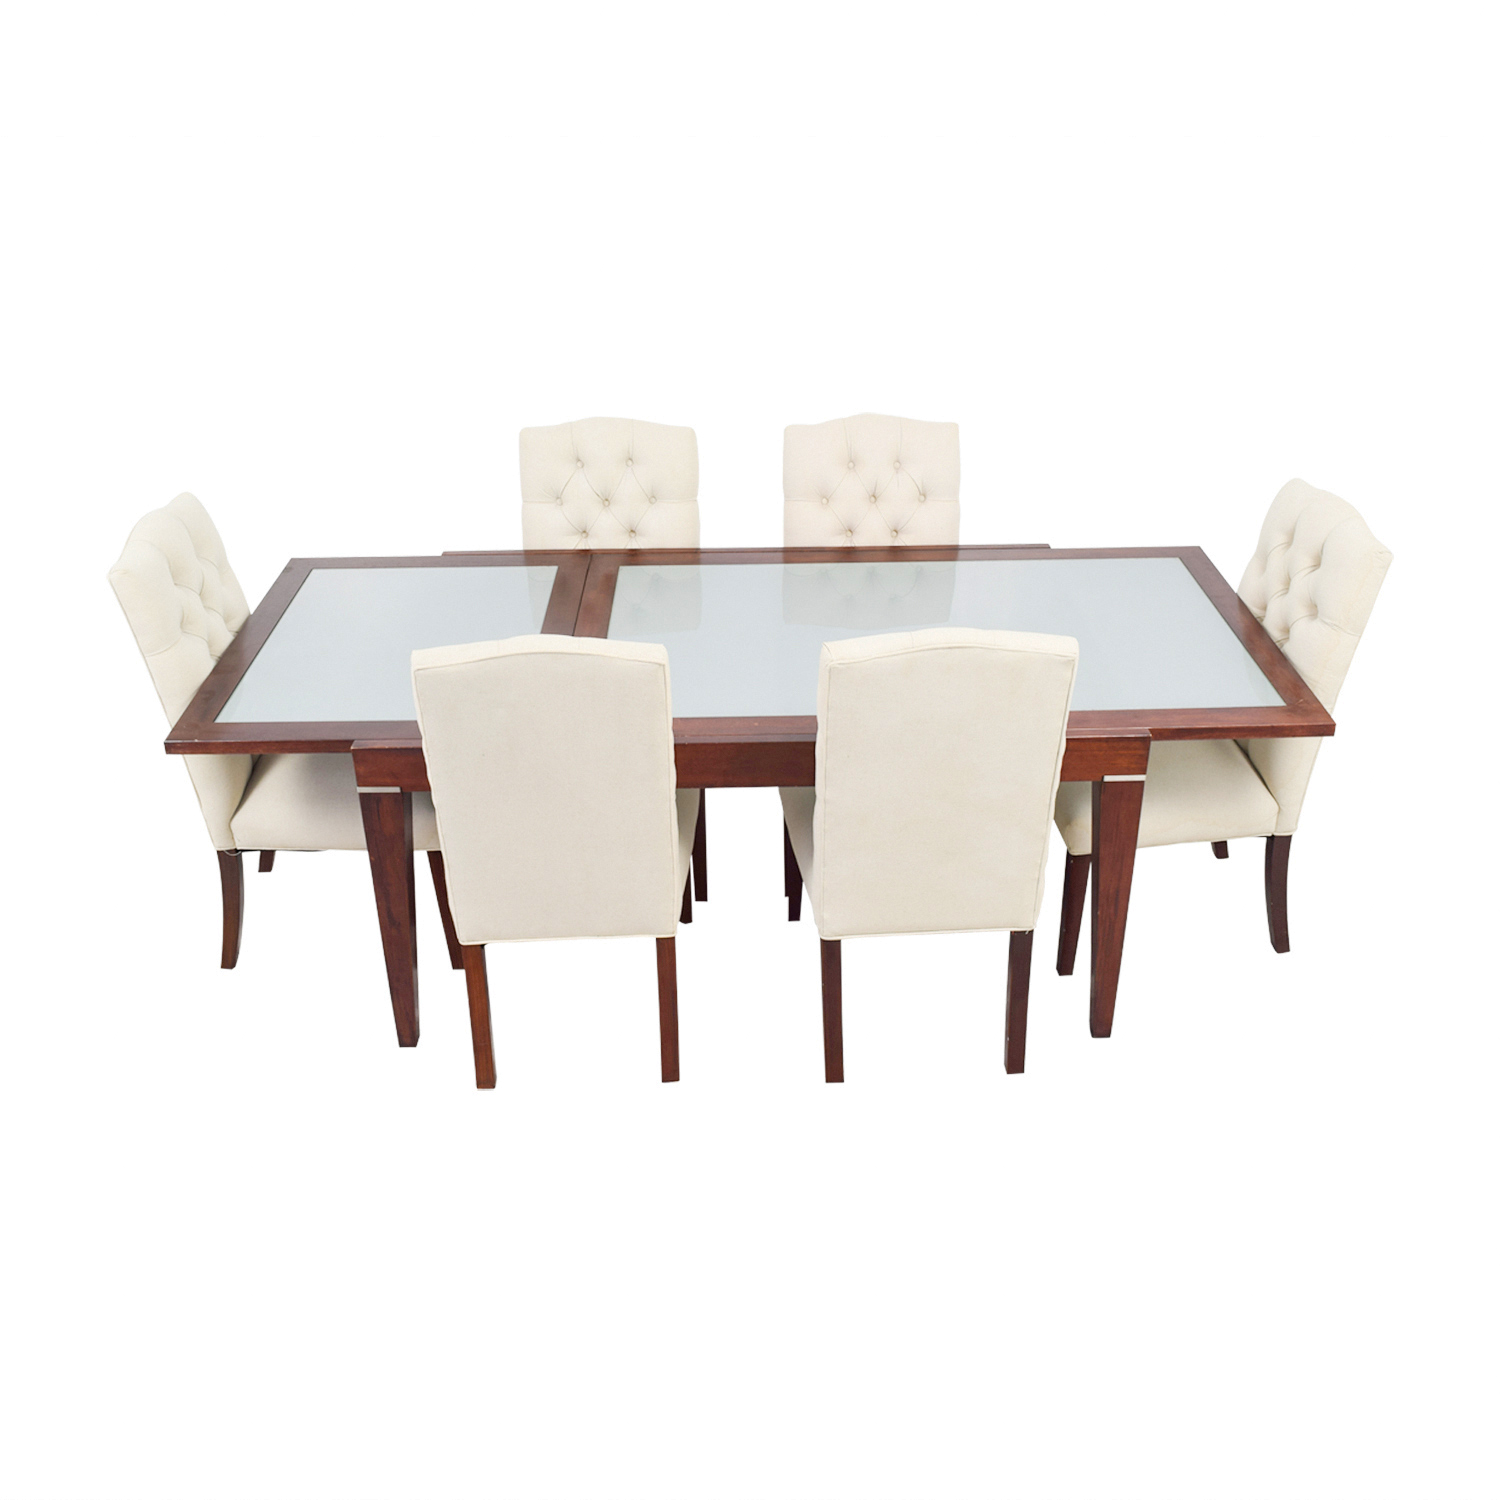 buy West Elm West Elm Extendable Glass & Wood Dining Set with Upholstered Tufted Chairs online